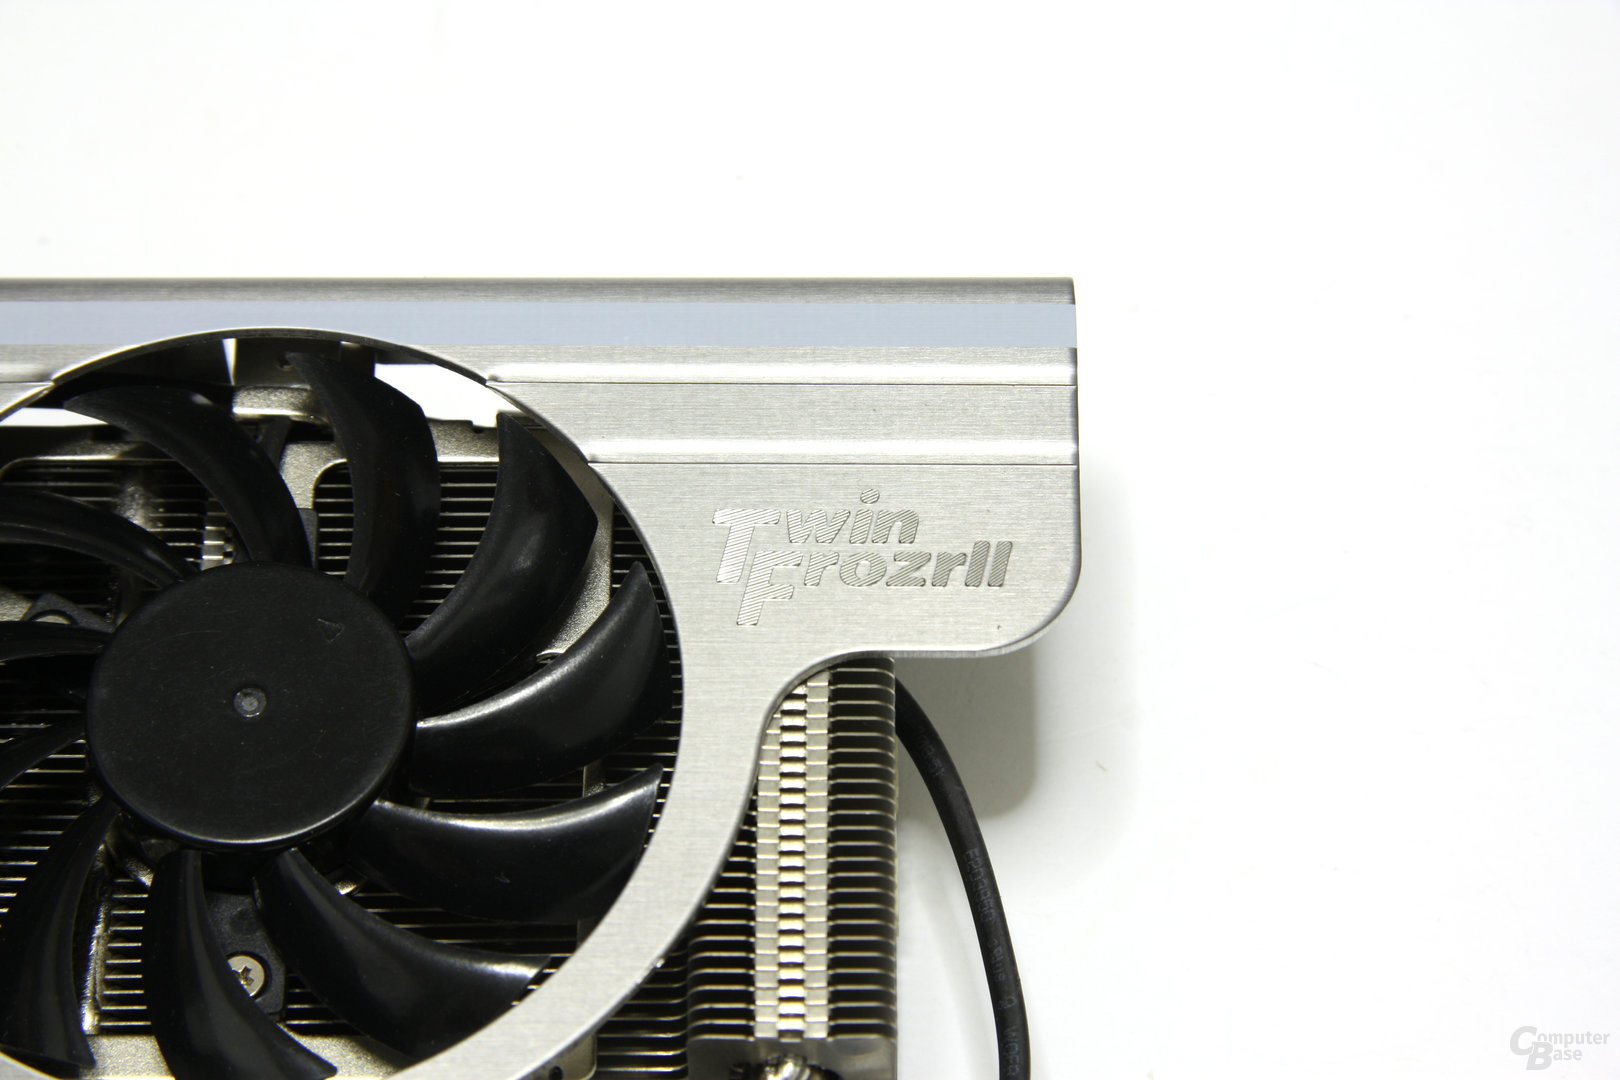 GeForce GTX 460 Hawk Twin Frozr II